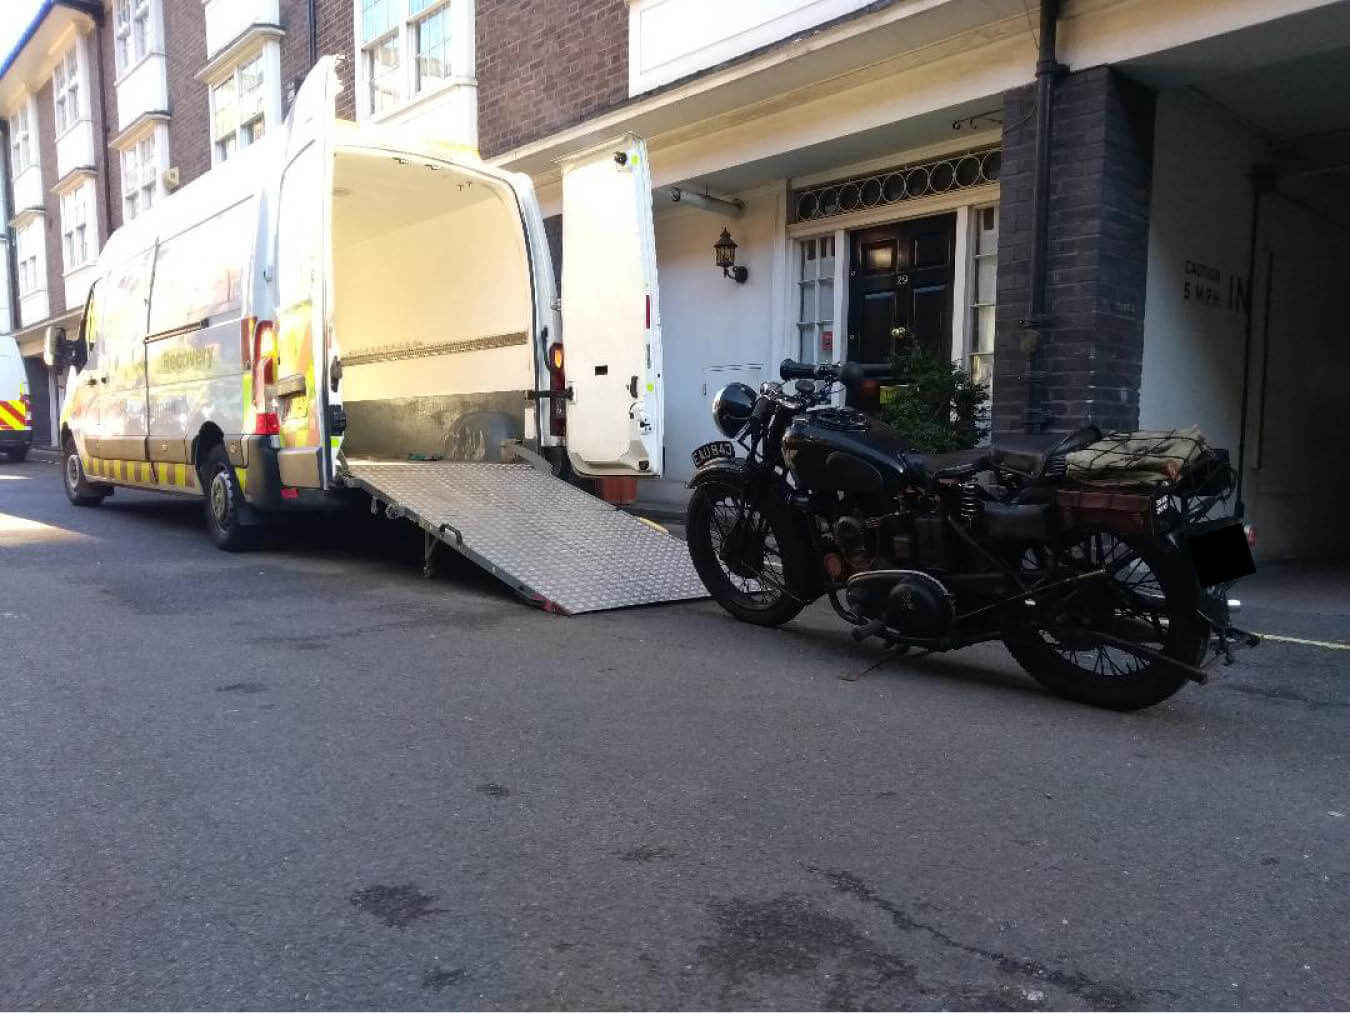 Van with ramp down to load large bike | LBT Motorcycle Recovery